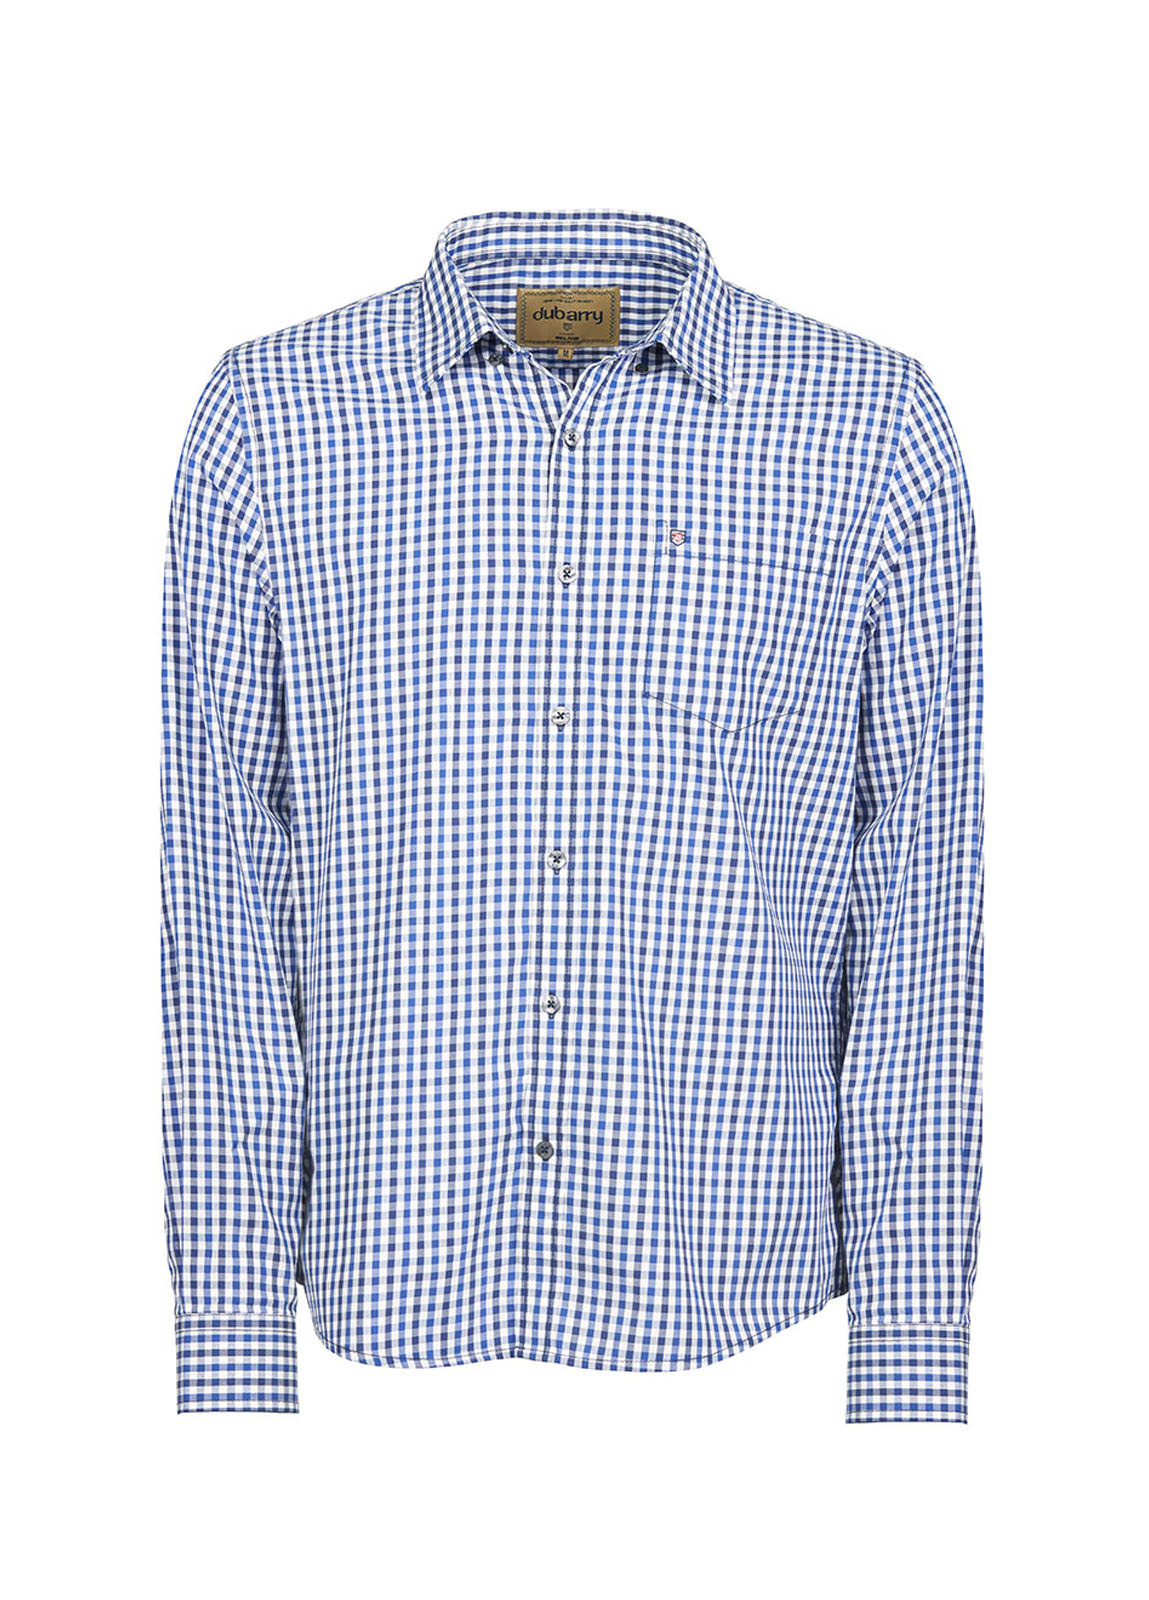 Dubarry_ Allenwood Men's Shirt - Blue Multi_Image_2